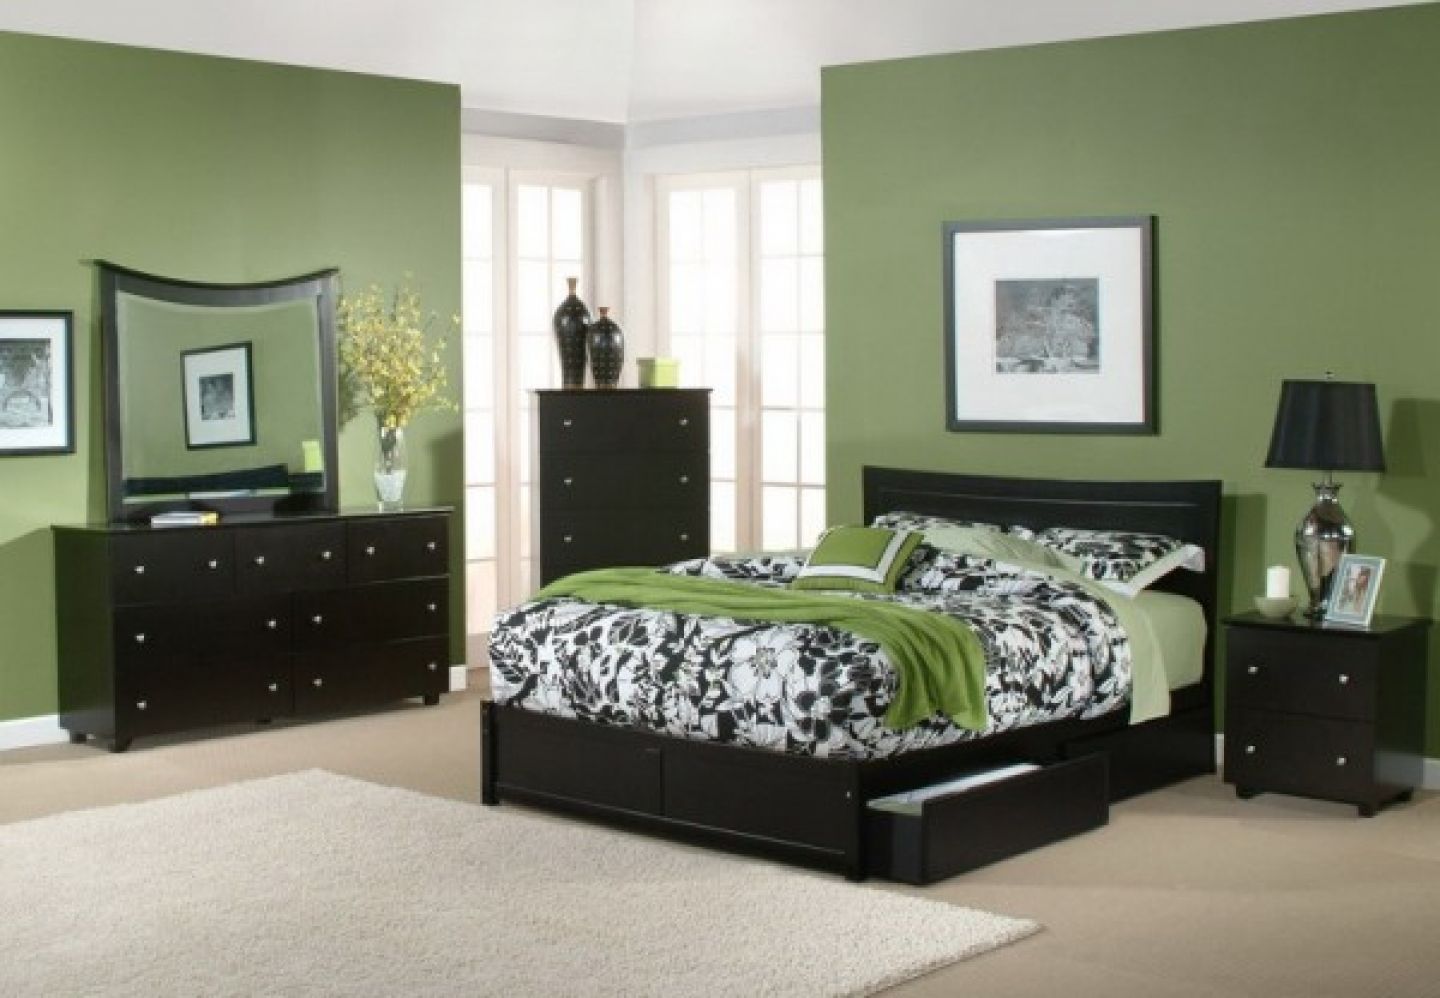 Cozy Paint Color For Bedroom With Dark Furniture Interior Design for size 1440 X 998